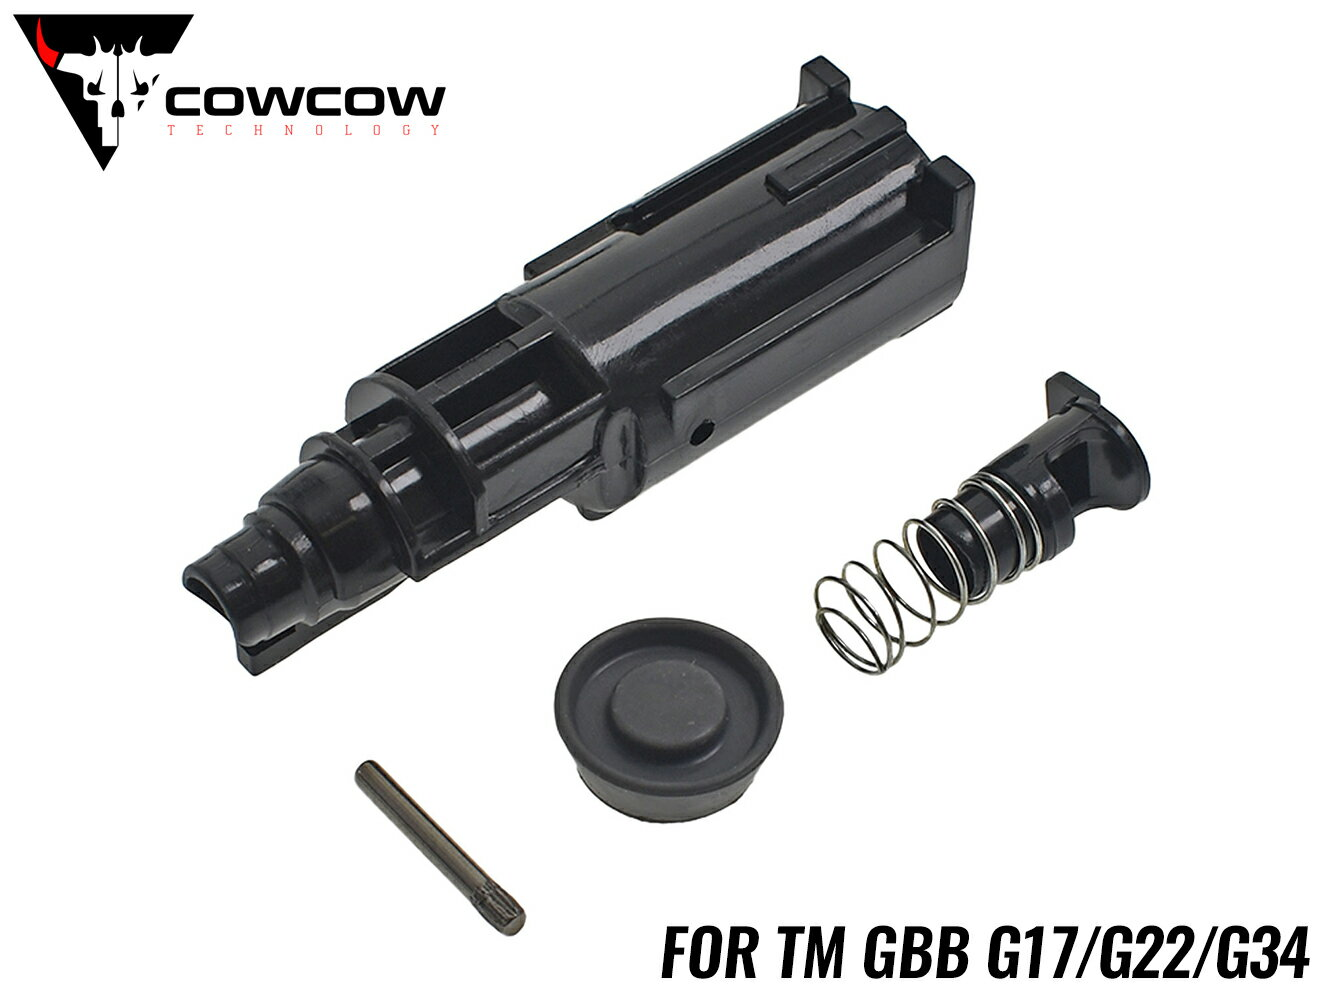 装備・備品, その他 COWCOW TECHNOLOGY TM G17G22G34 GBB GLOCK UP